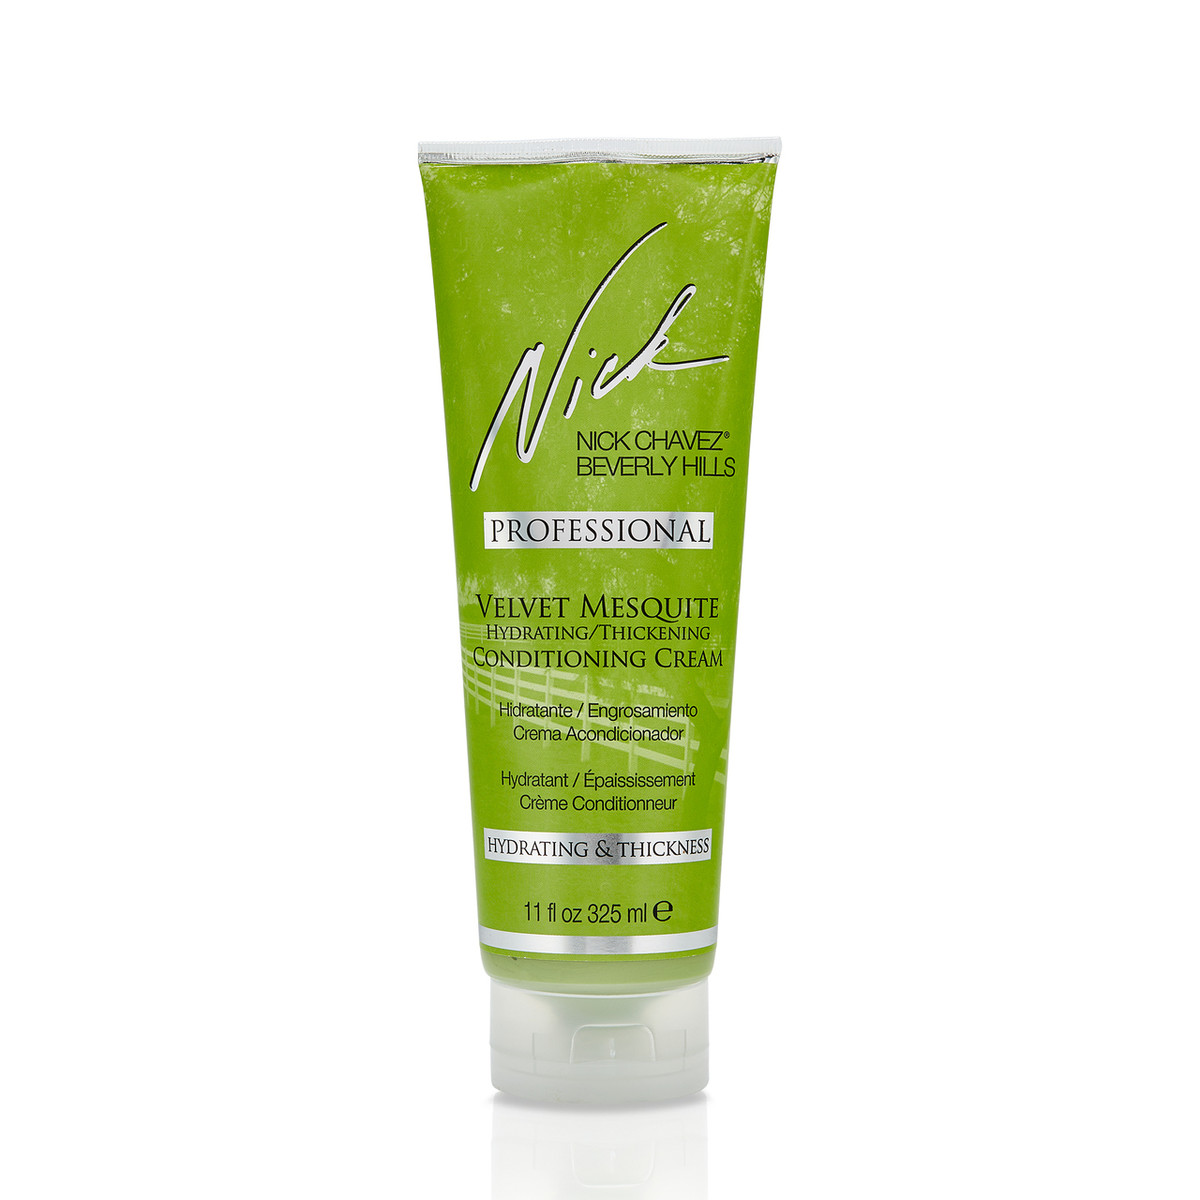 Velvet Mesquite Hydrating Thickening Conditioning Creme 12oz